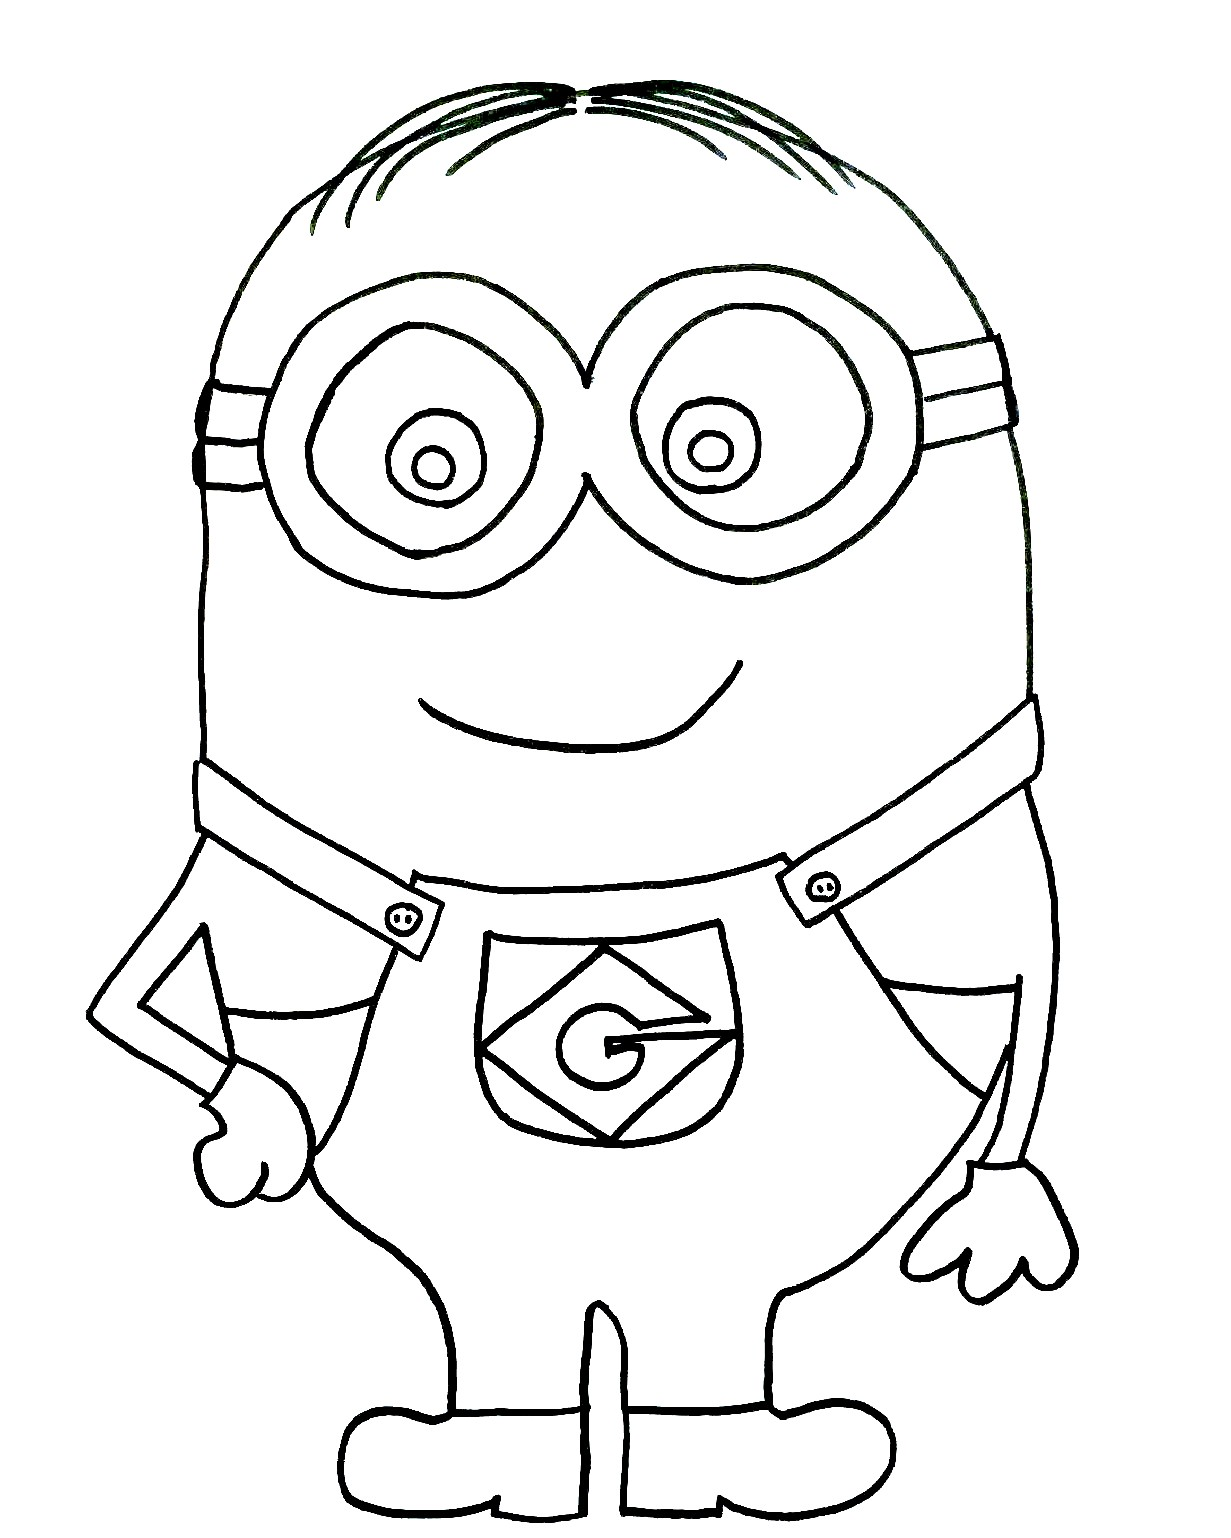 The art bug draw a minion step by step tutorial make for Minion coloring pages free